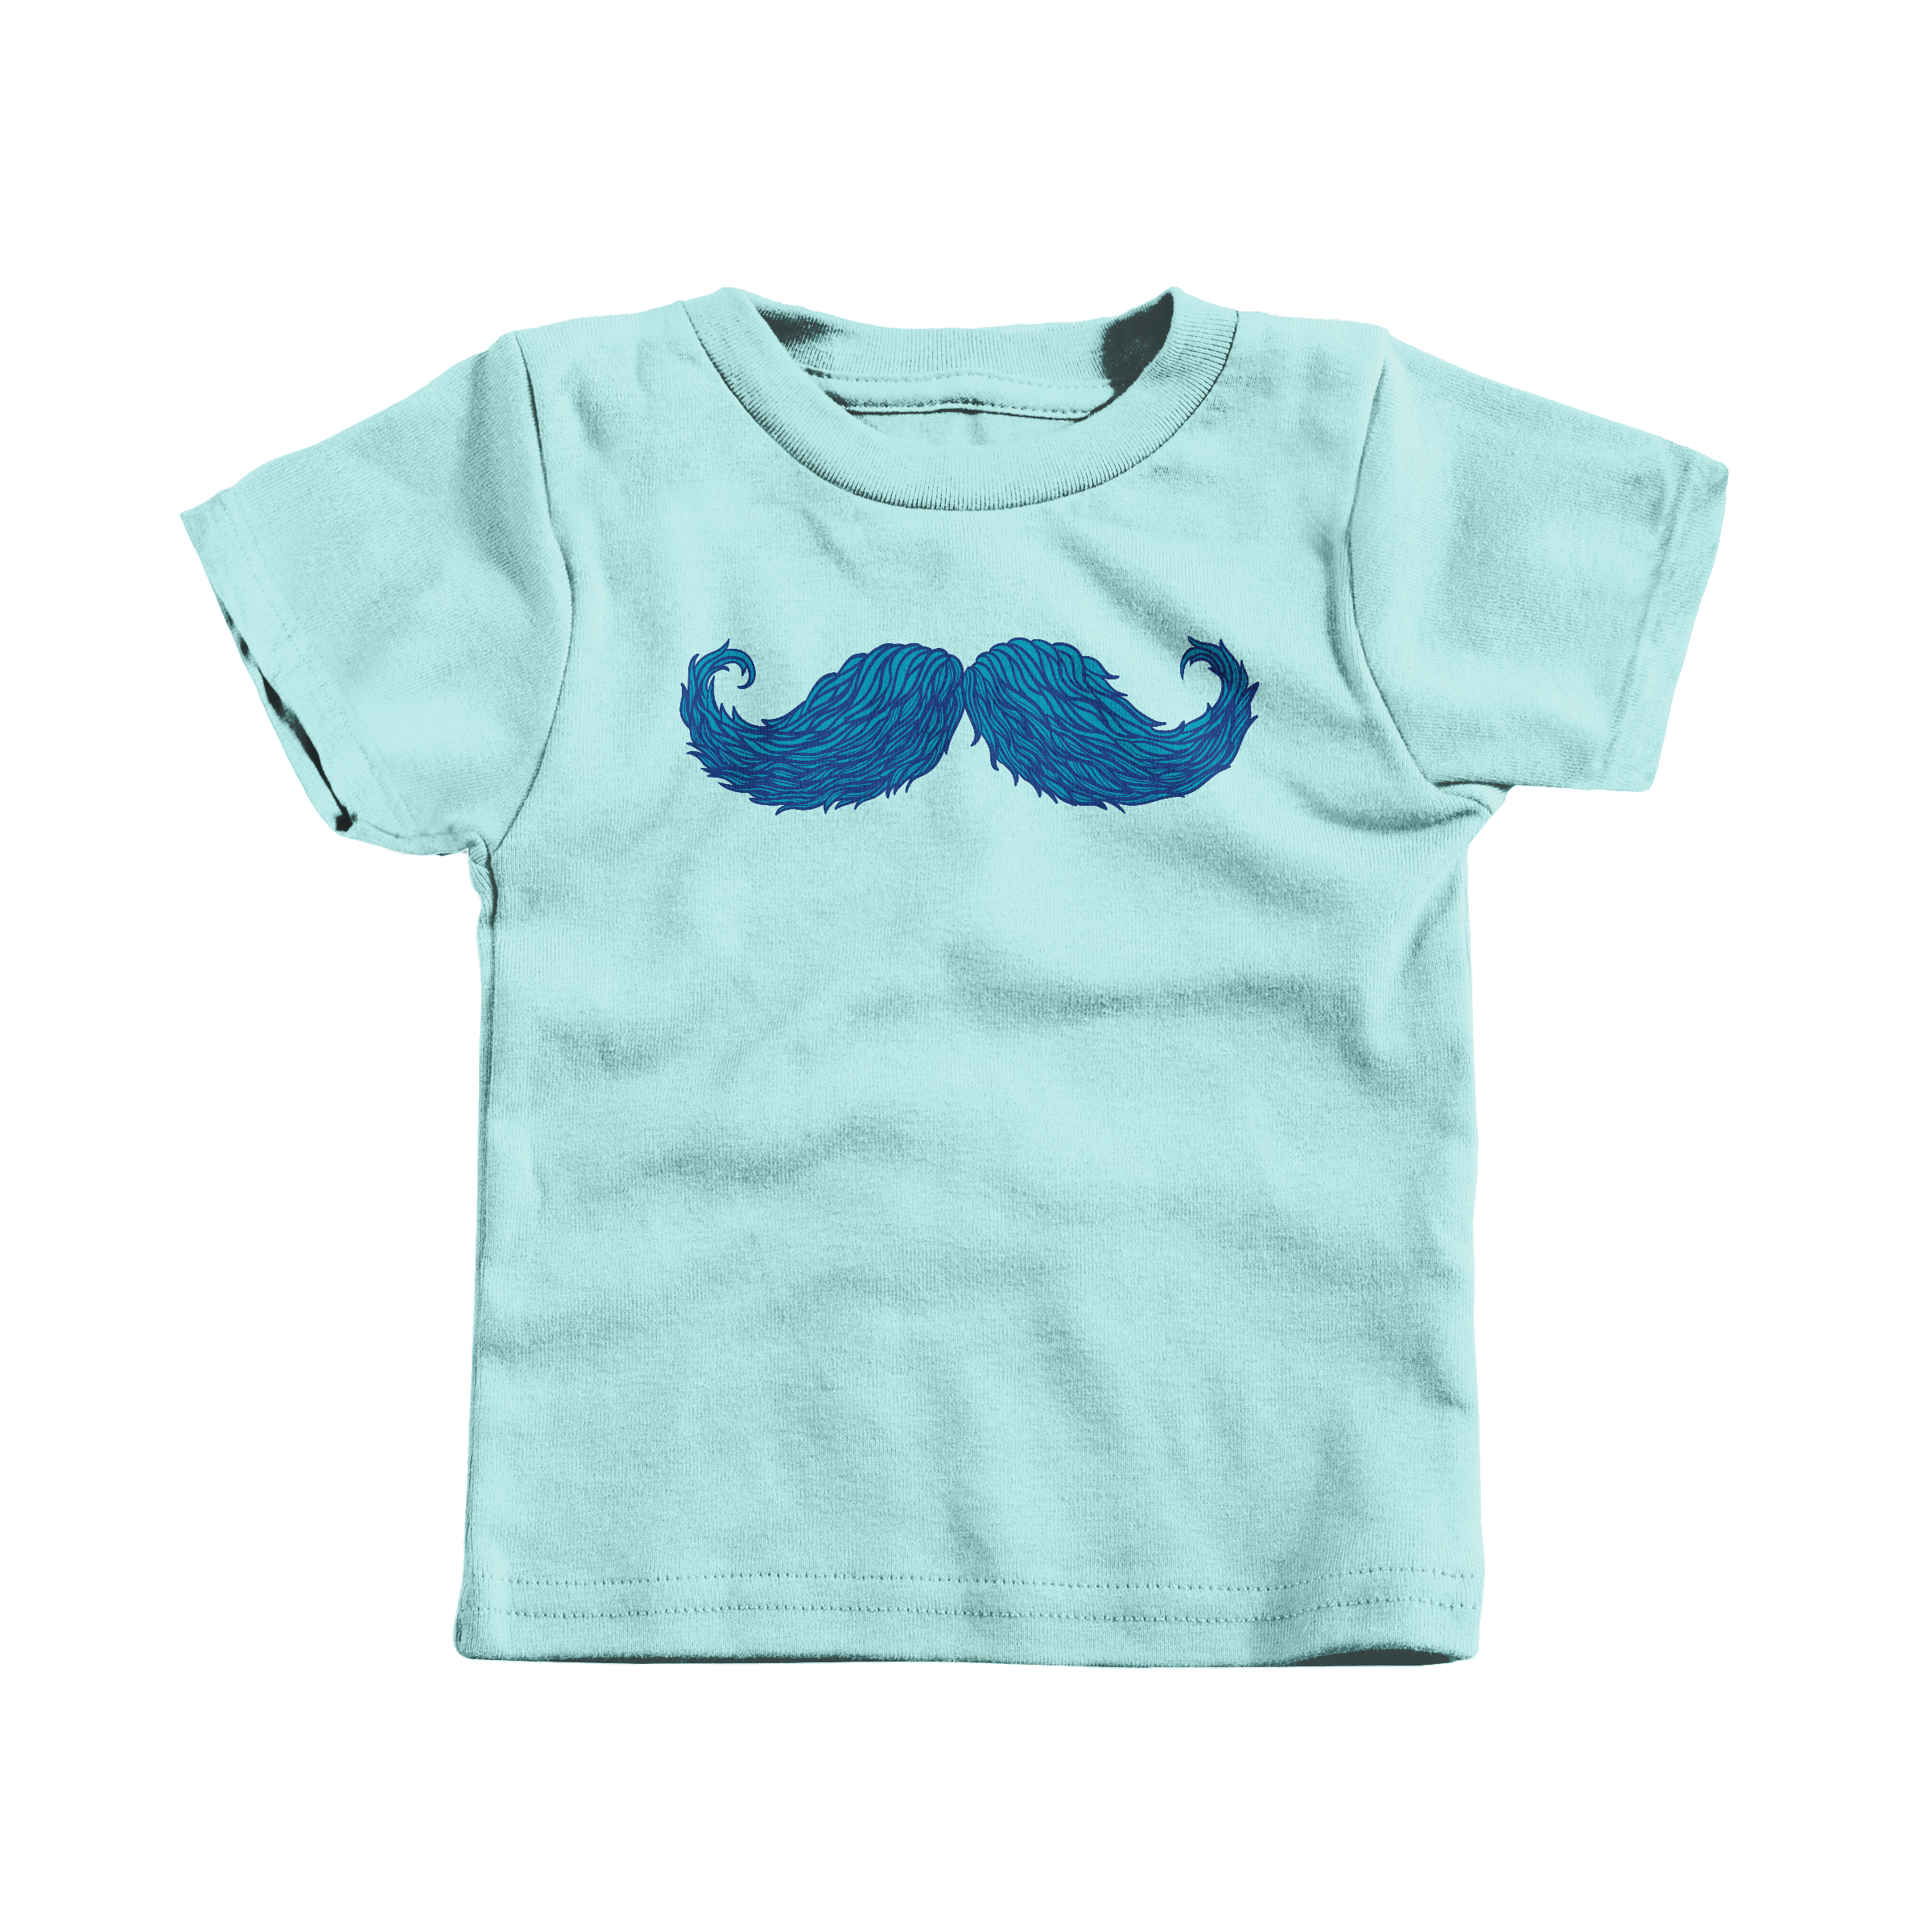 The Cheering Up Mustache Chill (T-Shirt)